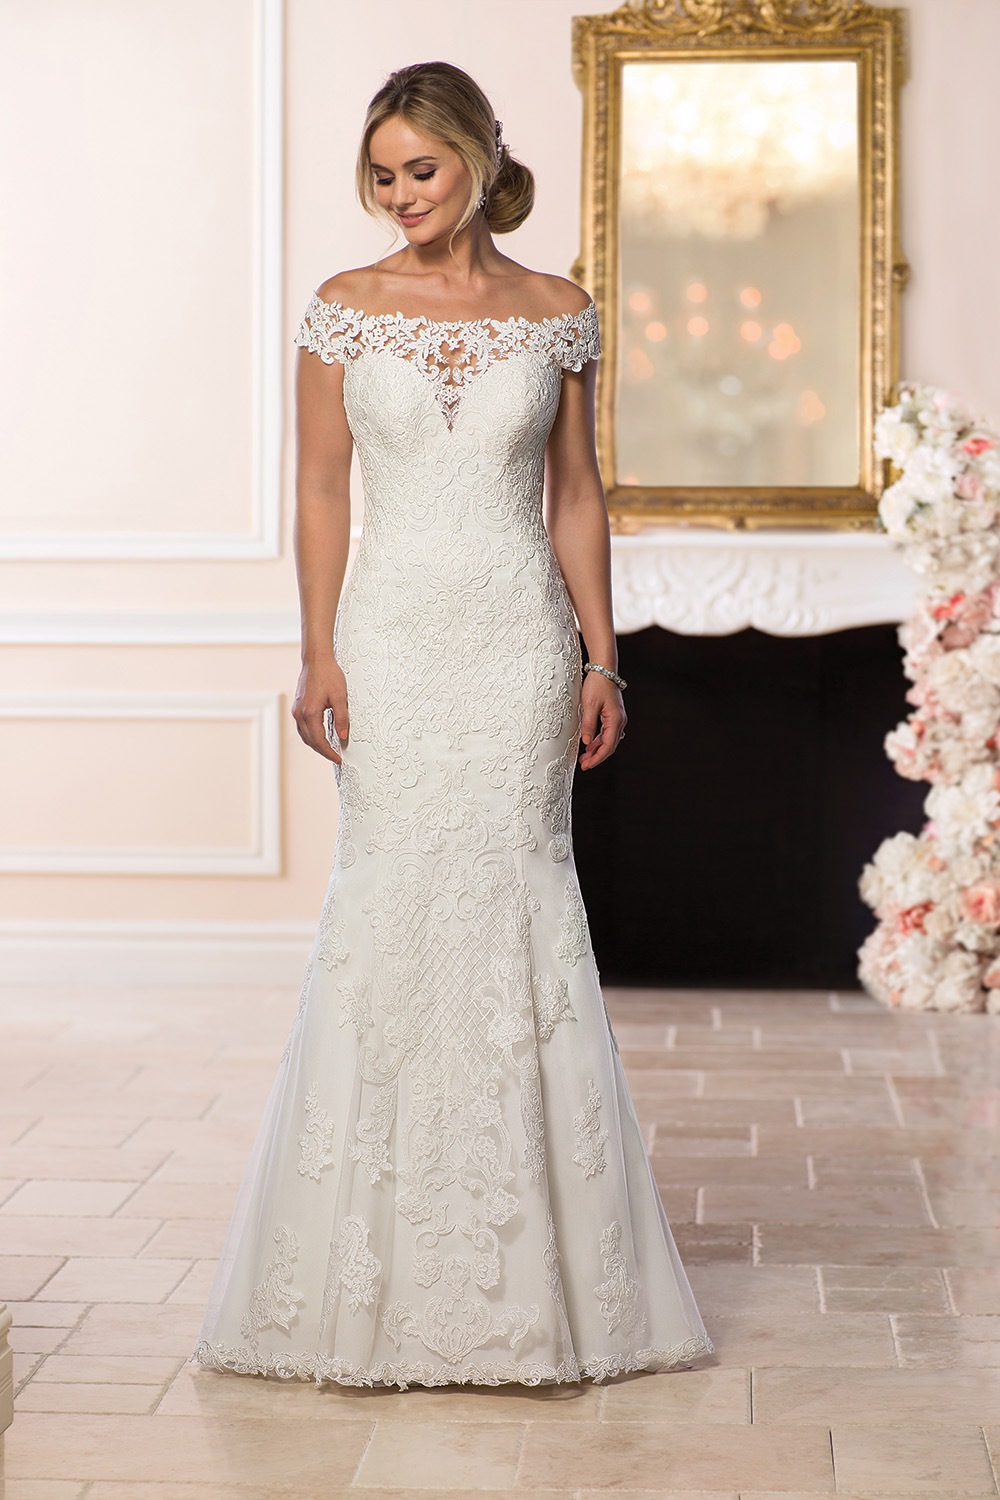 35d63a0c288c Dress Preview: Simply Yours Bridal & Formal Wear | The Wedding Mag